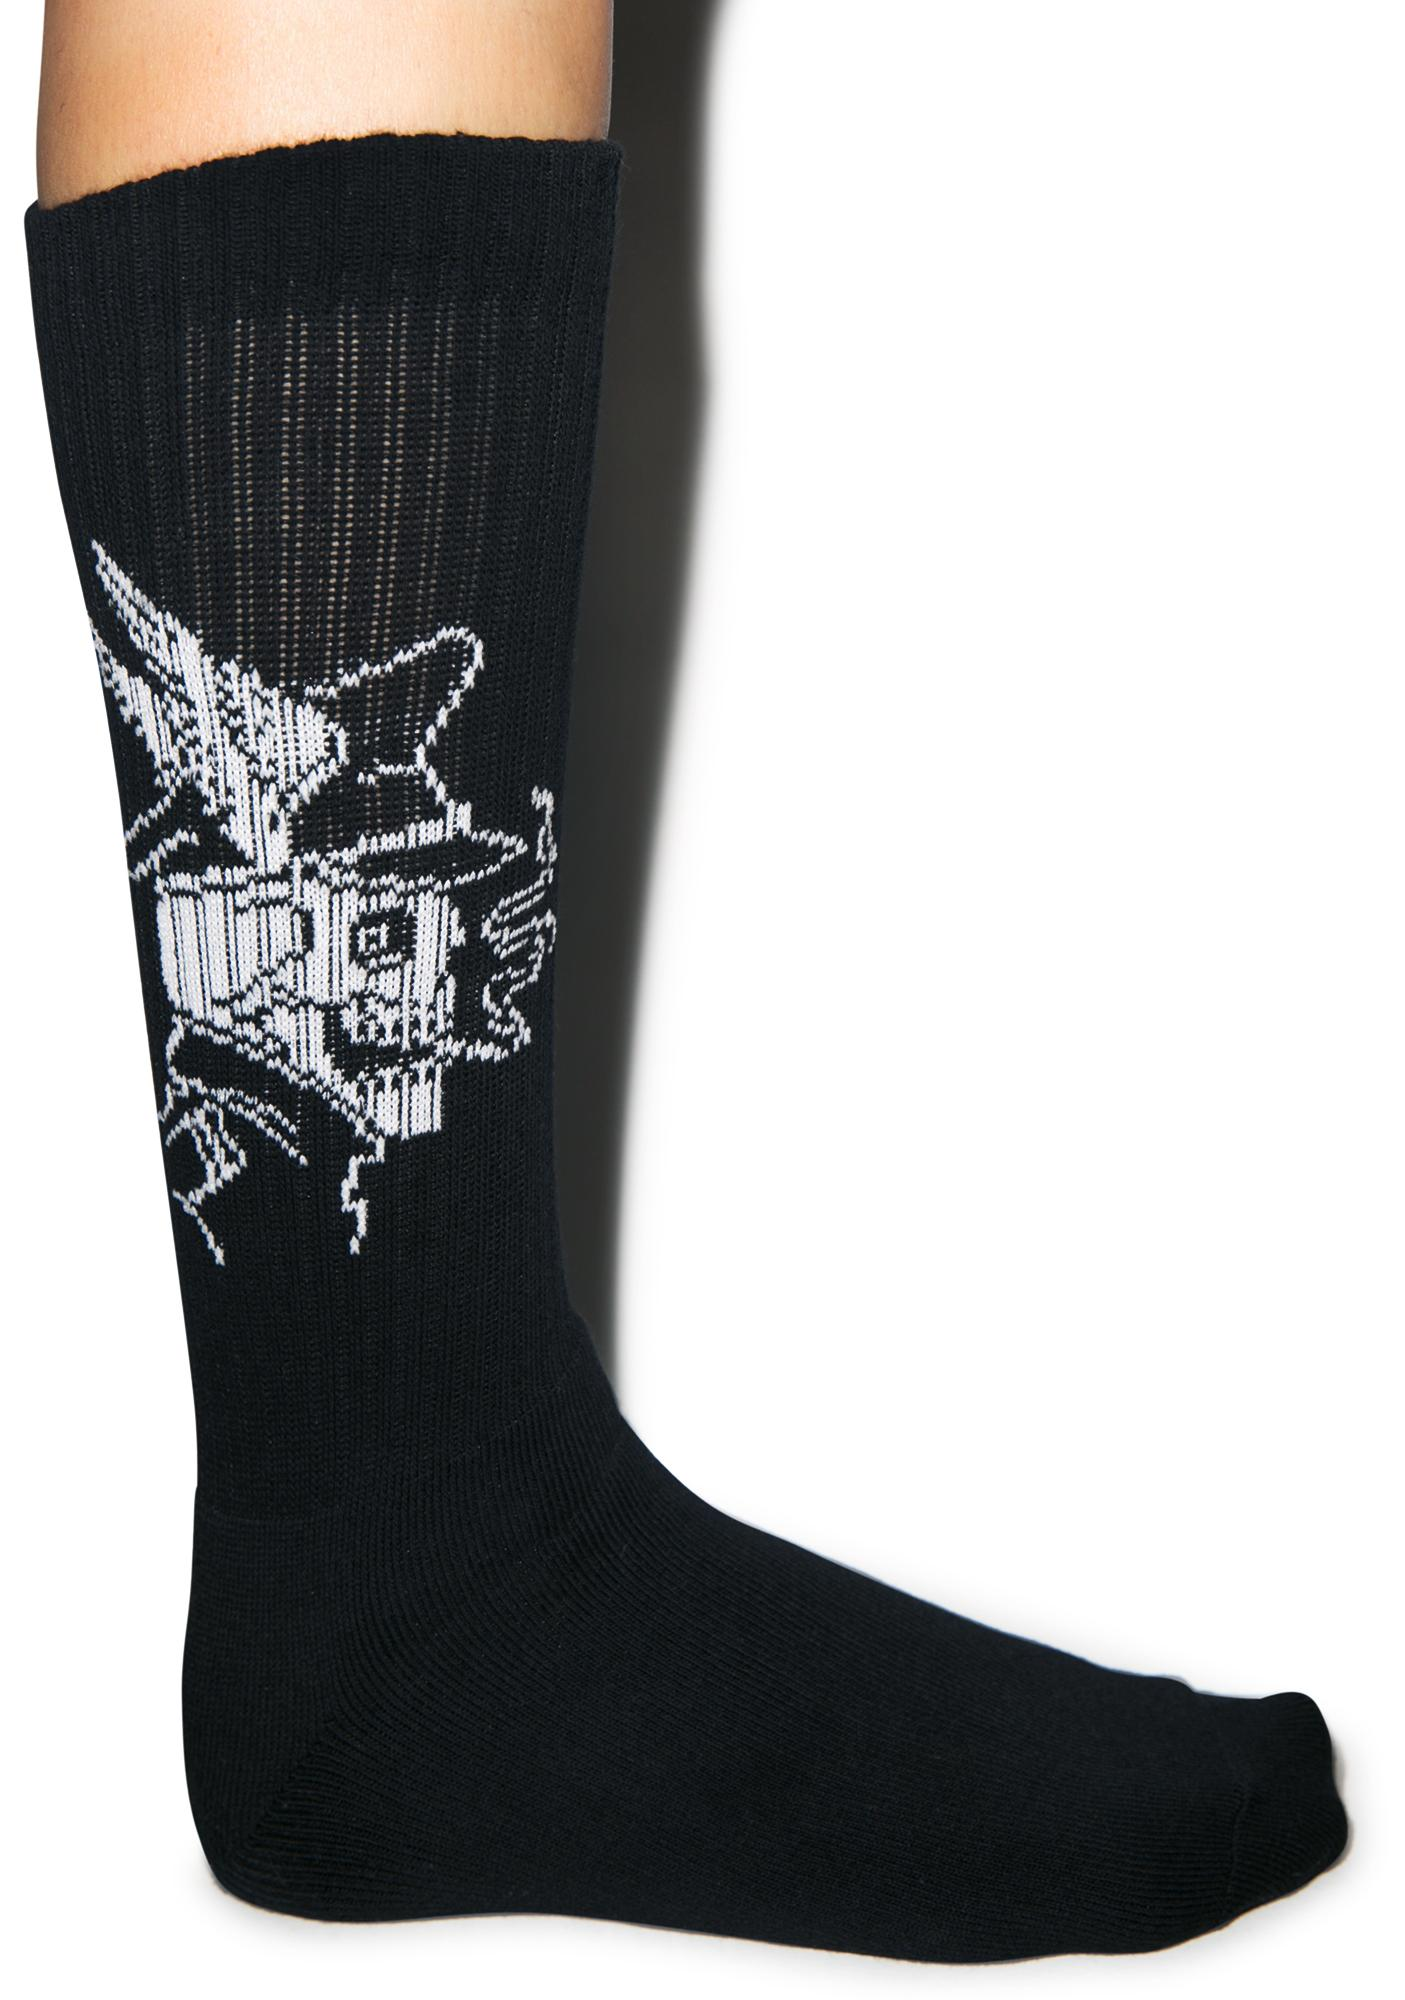 Rebel8 Ride Hard Socks